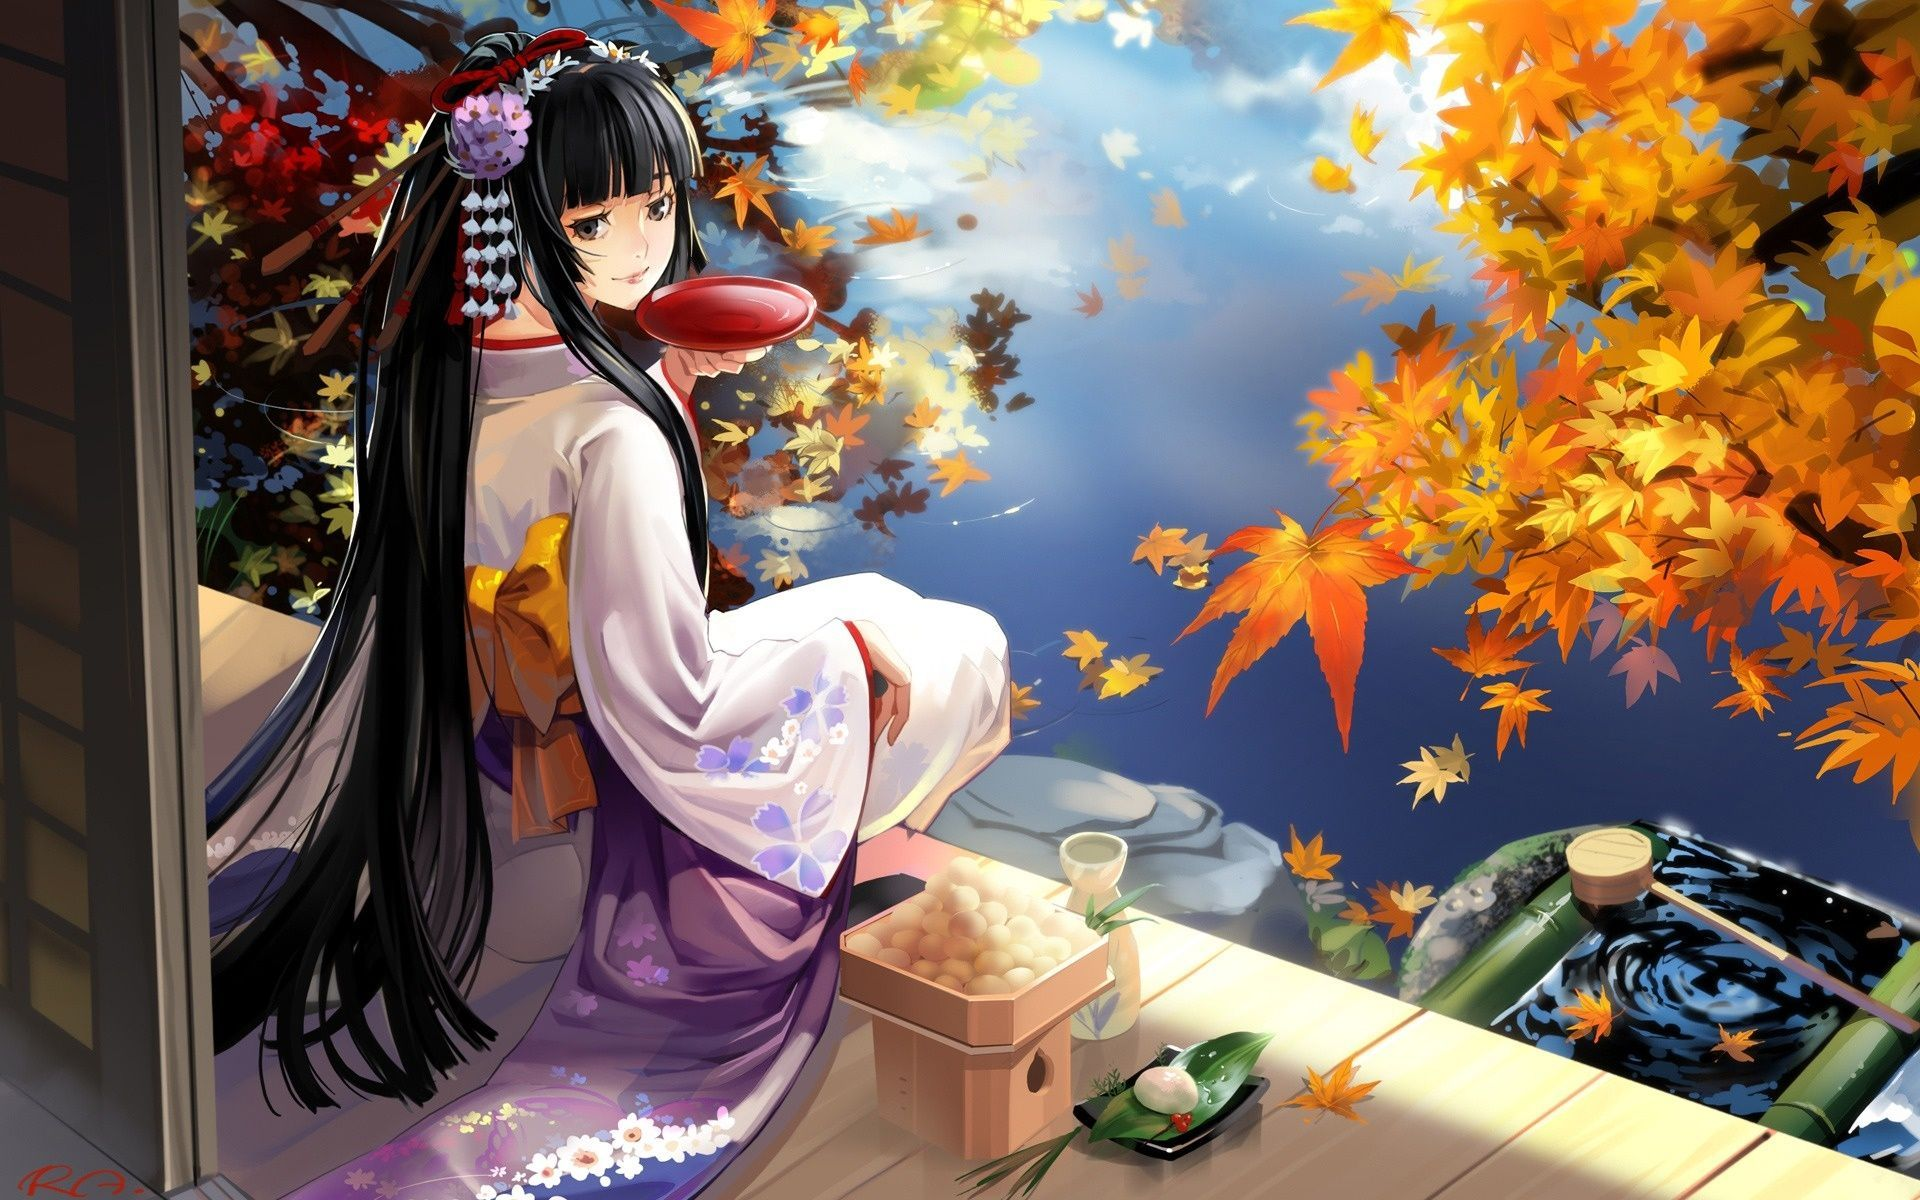 Beautiful Japanese Anime Art Hd Wallpaper 15458 Wallpaper Geisha Anime Cute Anime Wallpaper Anime Scenery